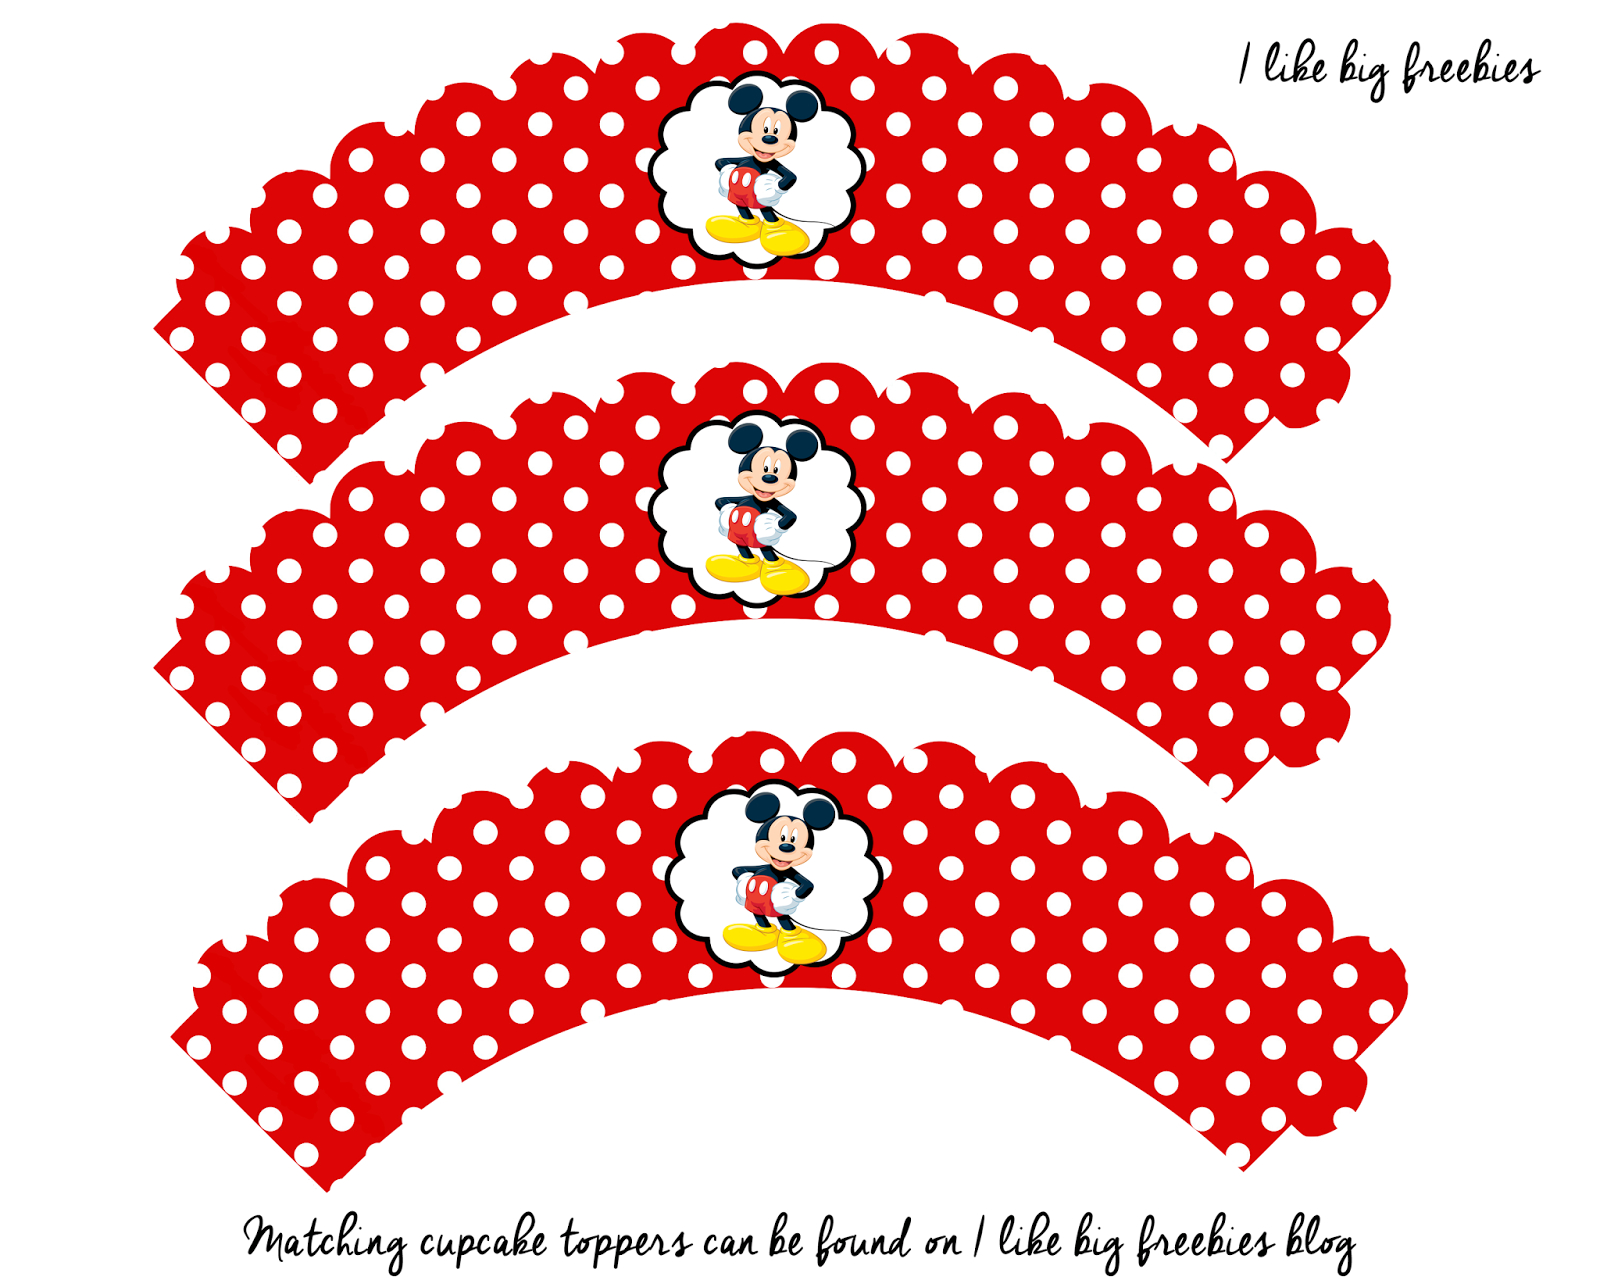 Free Mickey Mouse Cupcake Wrapper Printable | Digital Goodies - Free Printable Minnie Mouse Cupcake Wrappers